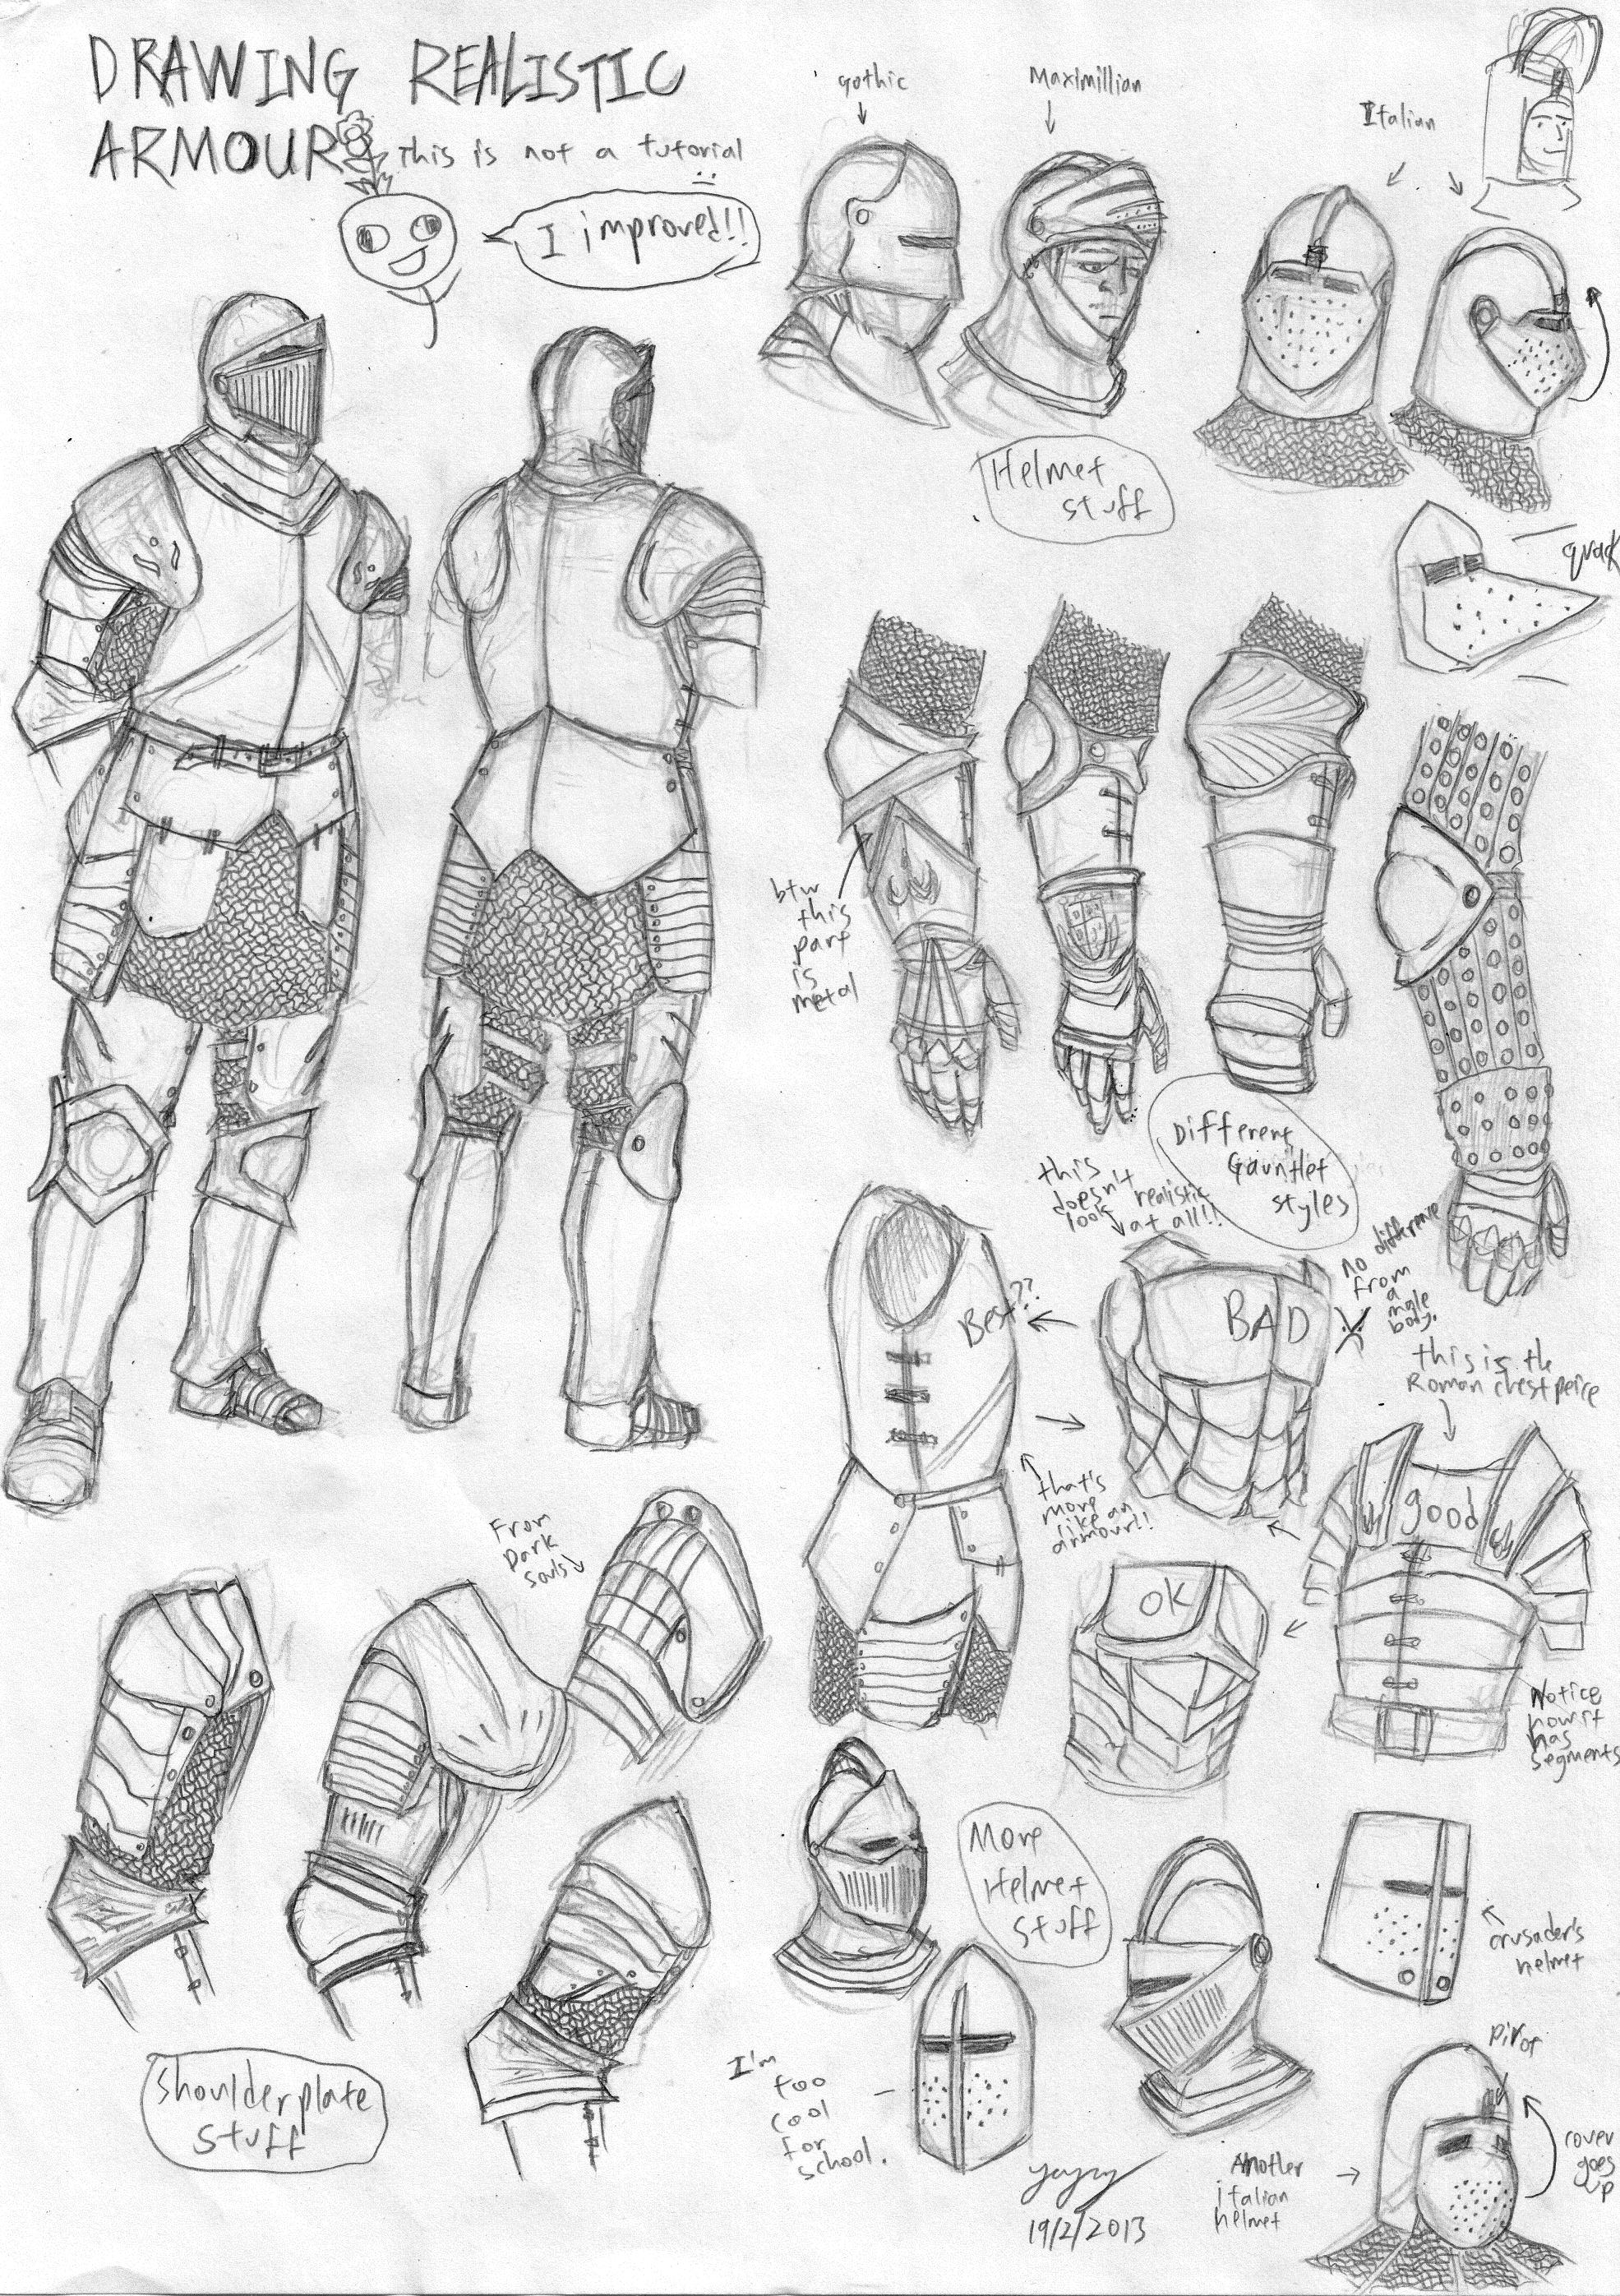 draw male armor - Google Search   Drawing   Pinterest ...